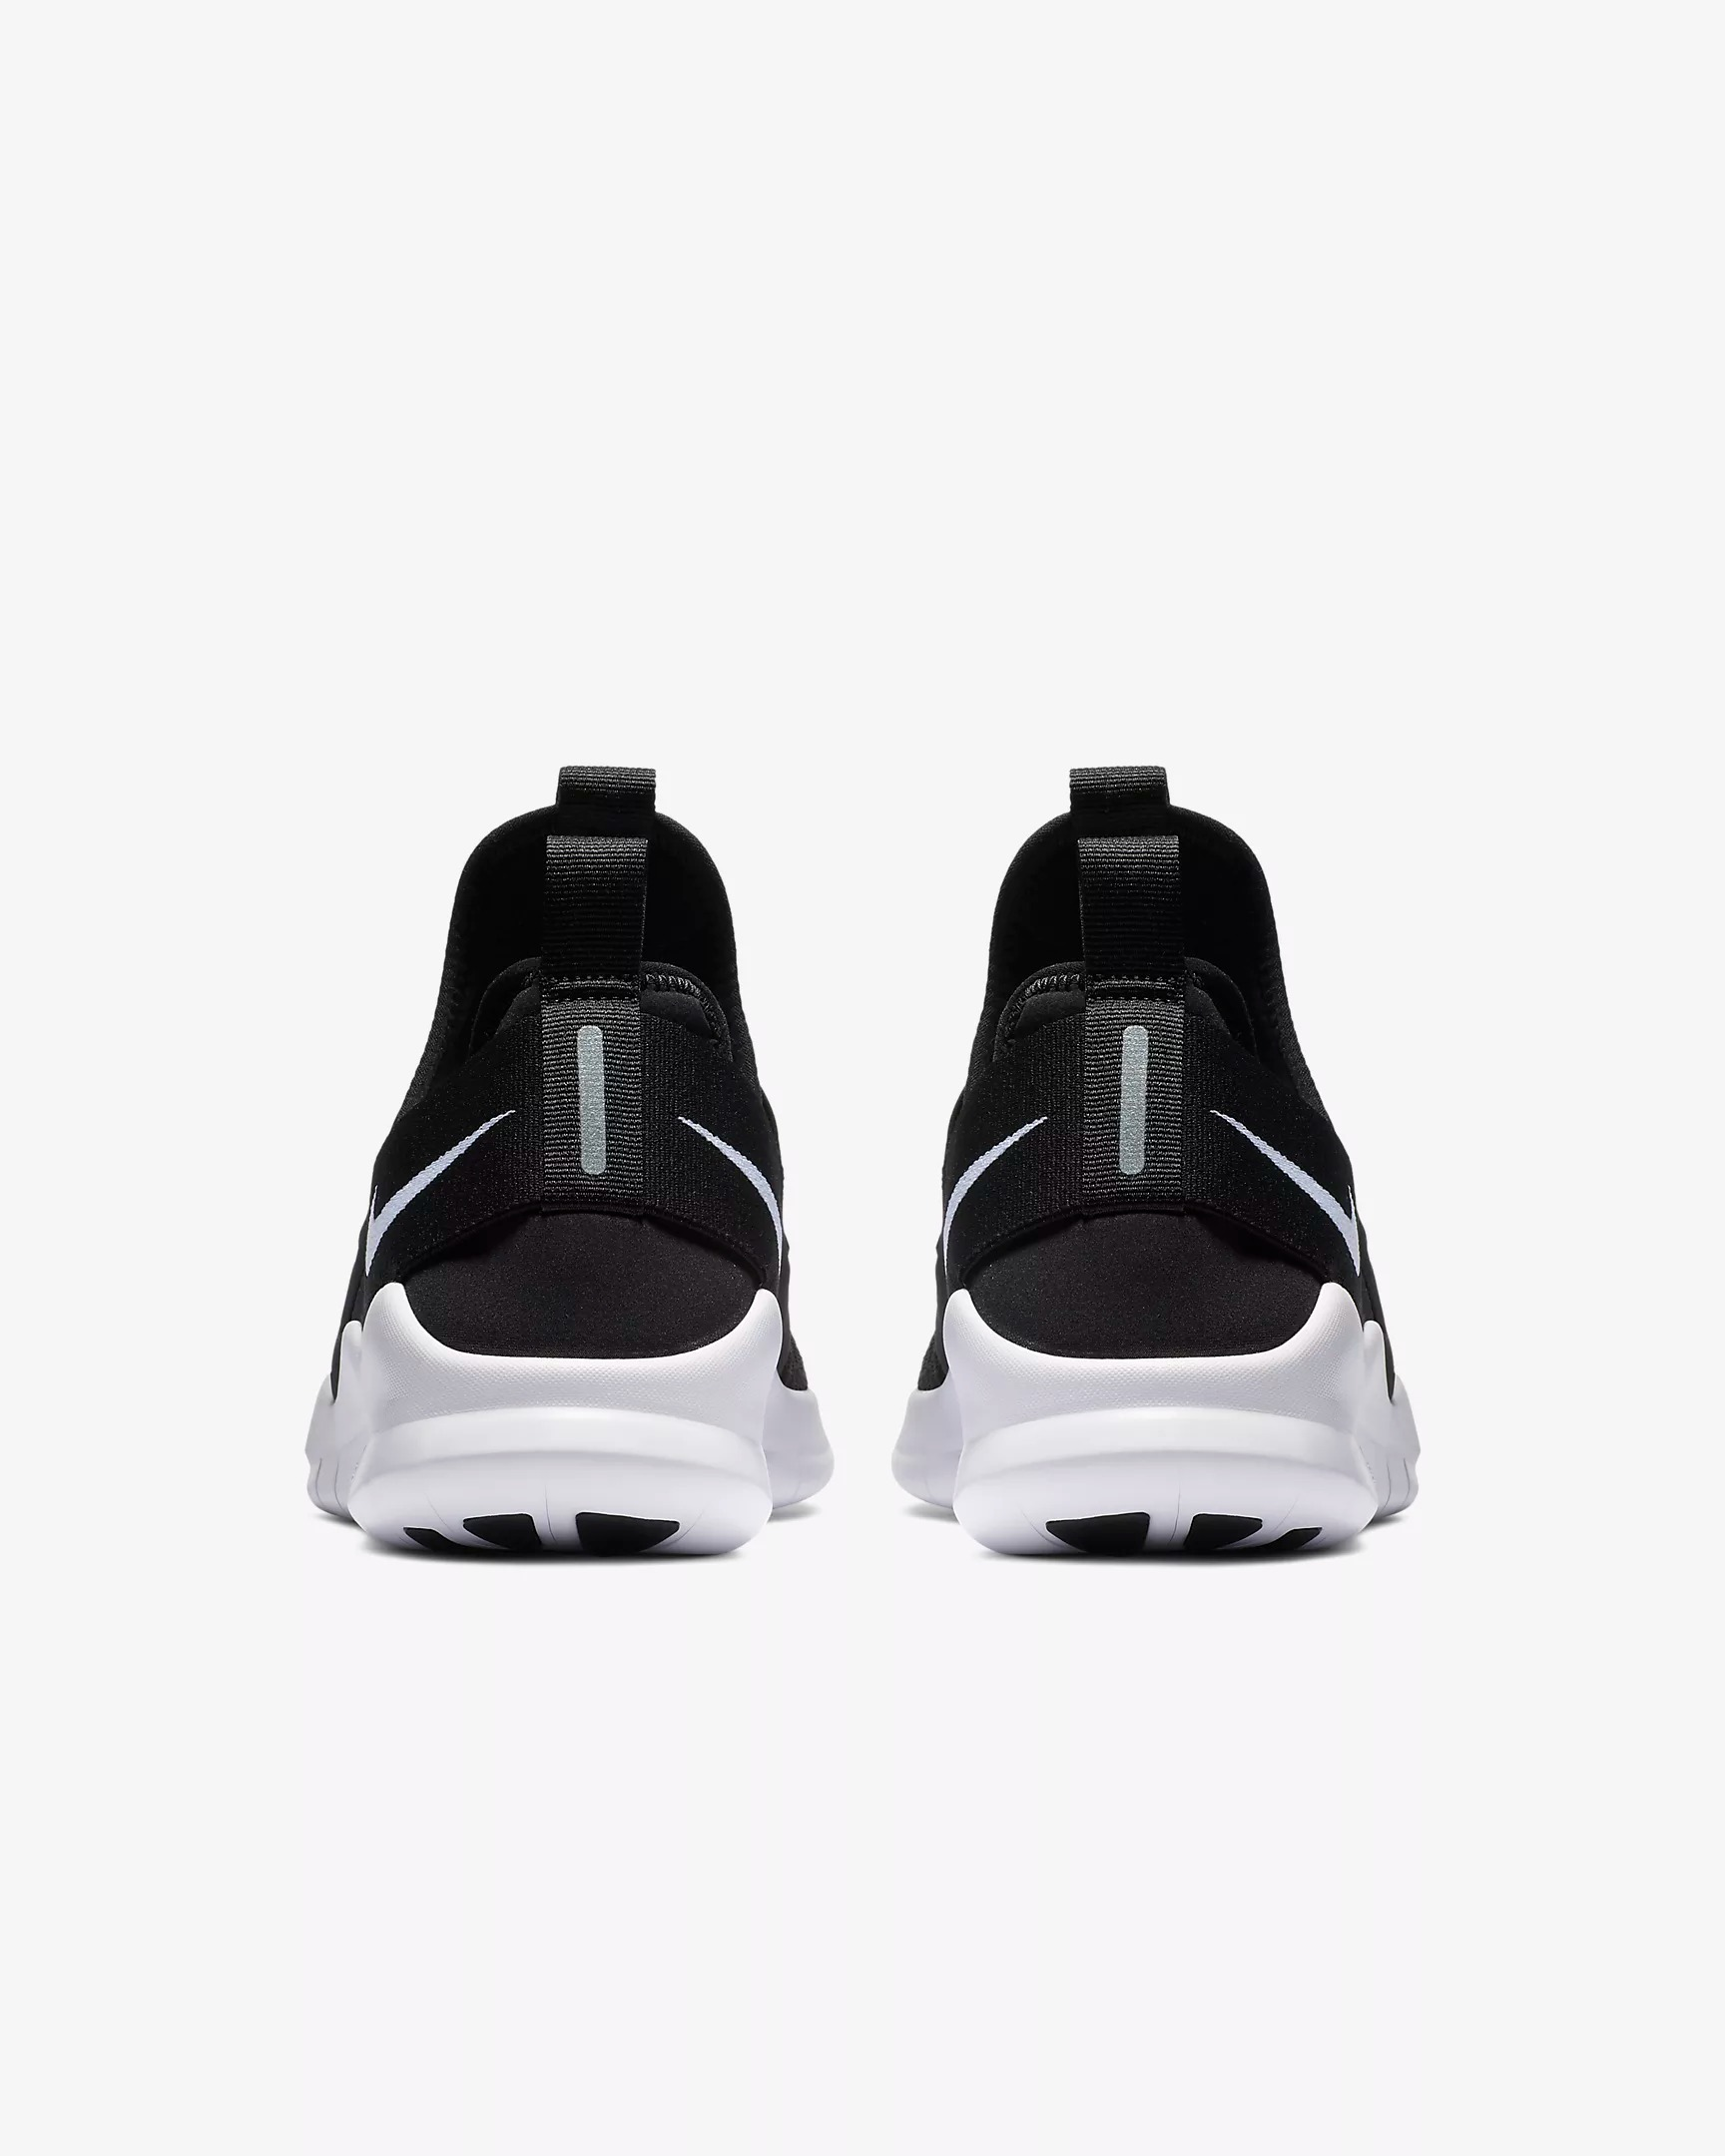 a58326082a5 Nike Free RN Commuter 2018 Running Shoes - SPORT SHOES RUNNING SHOES ...